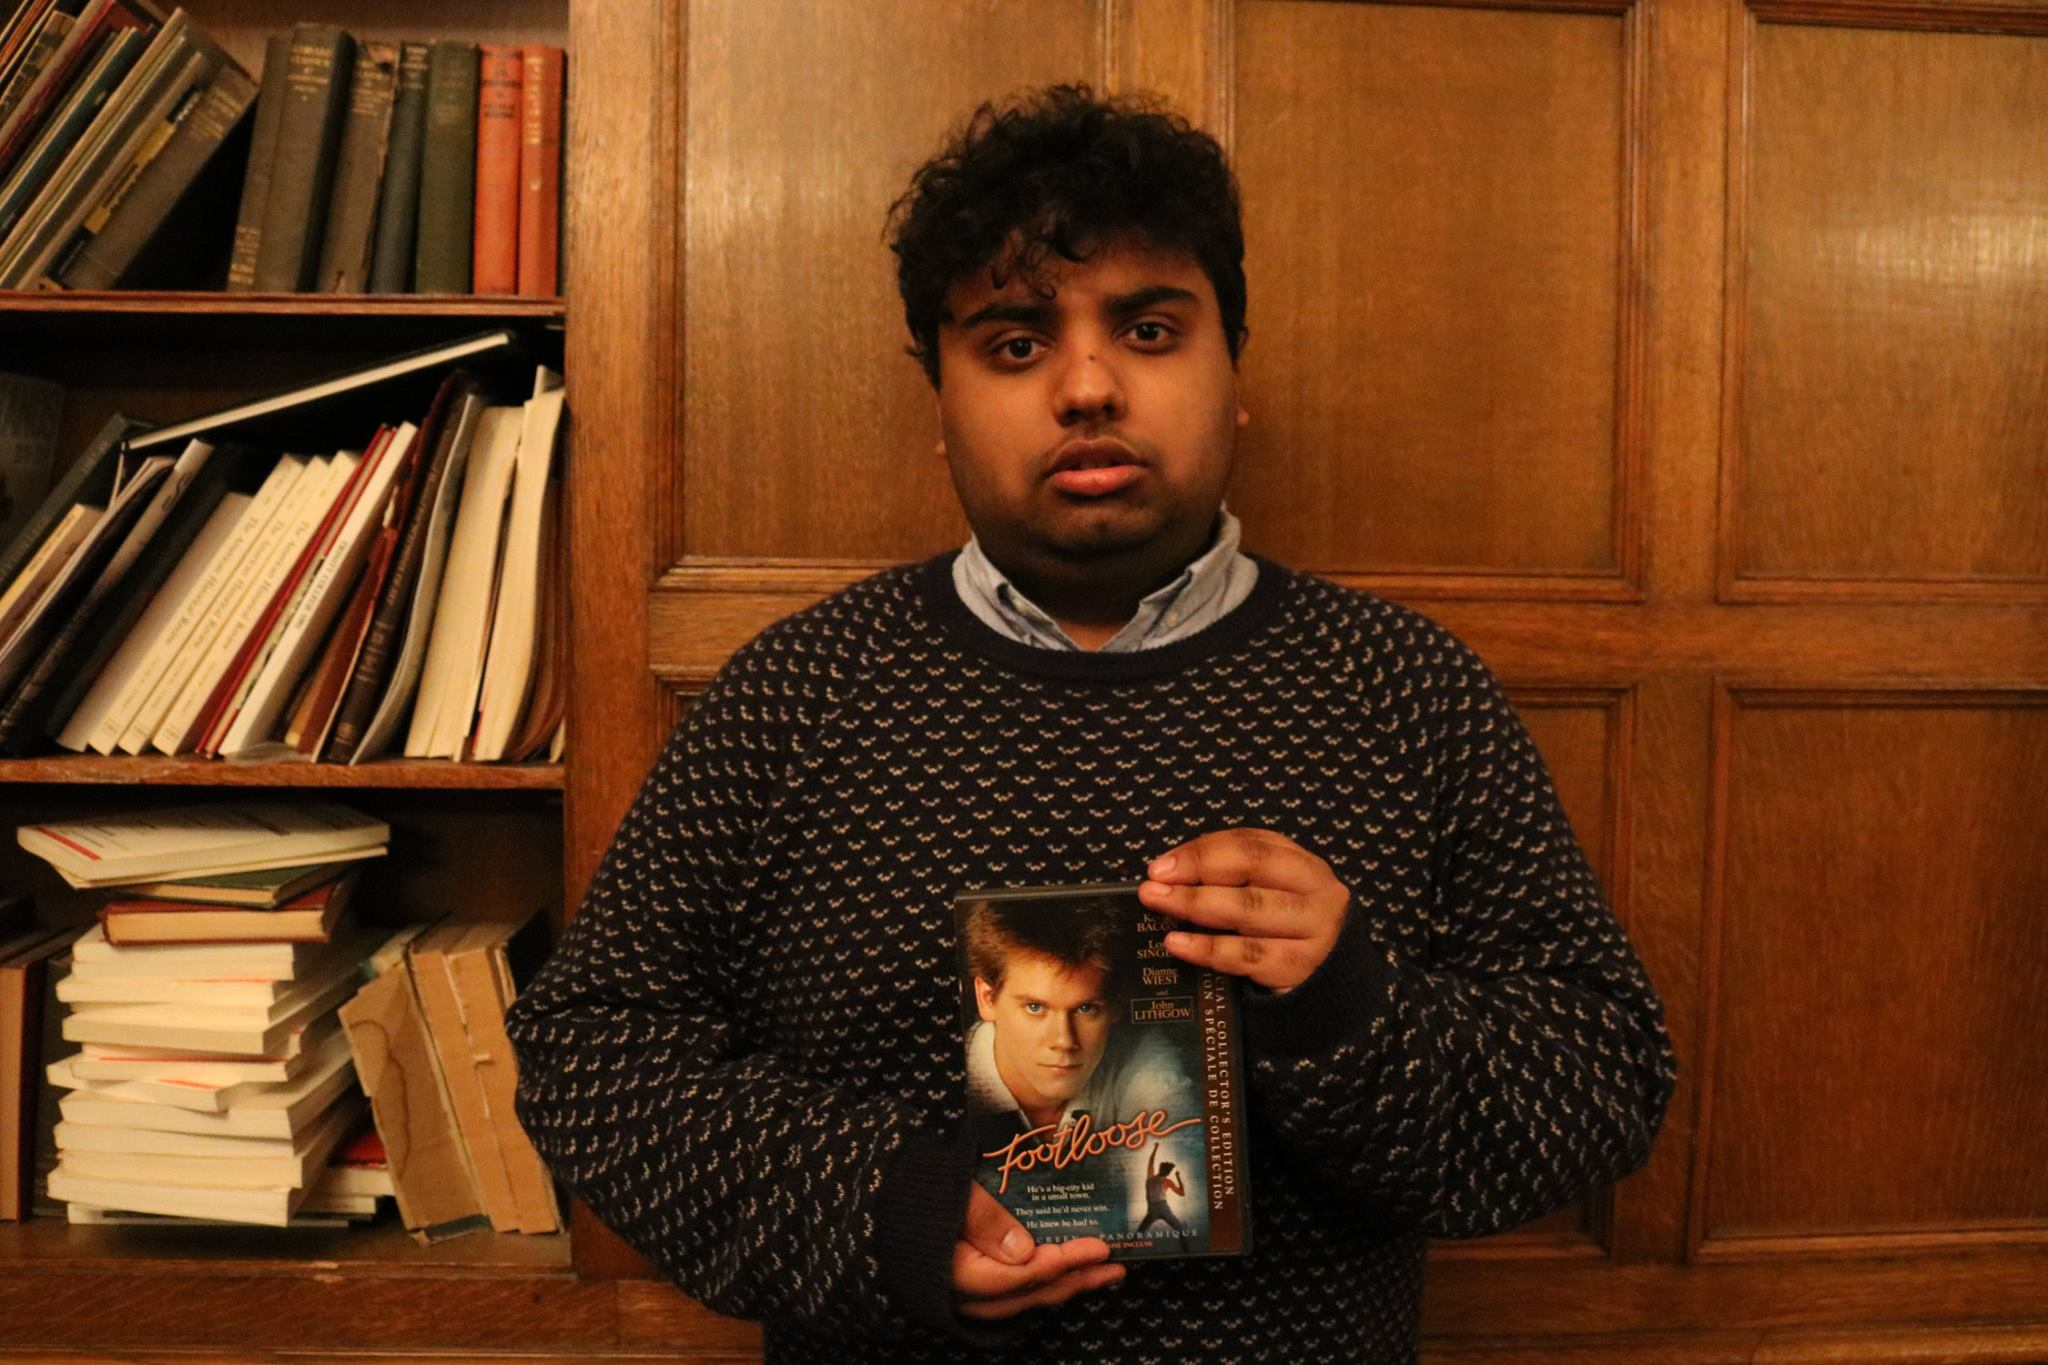 Picture of Avneet holding a DVD copy of Footloose